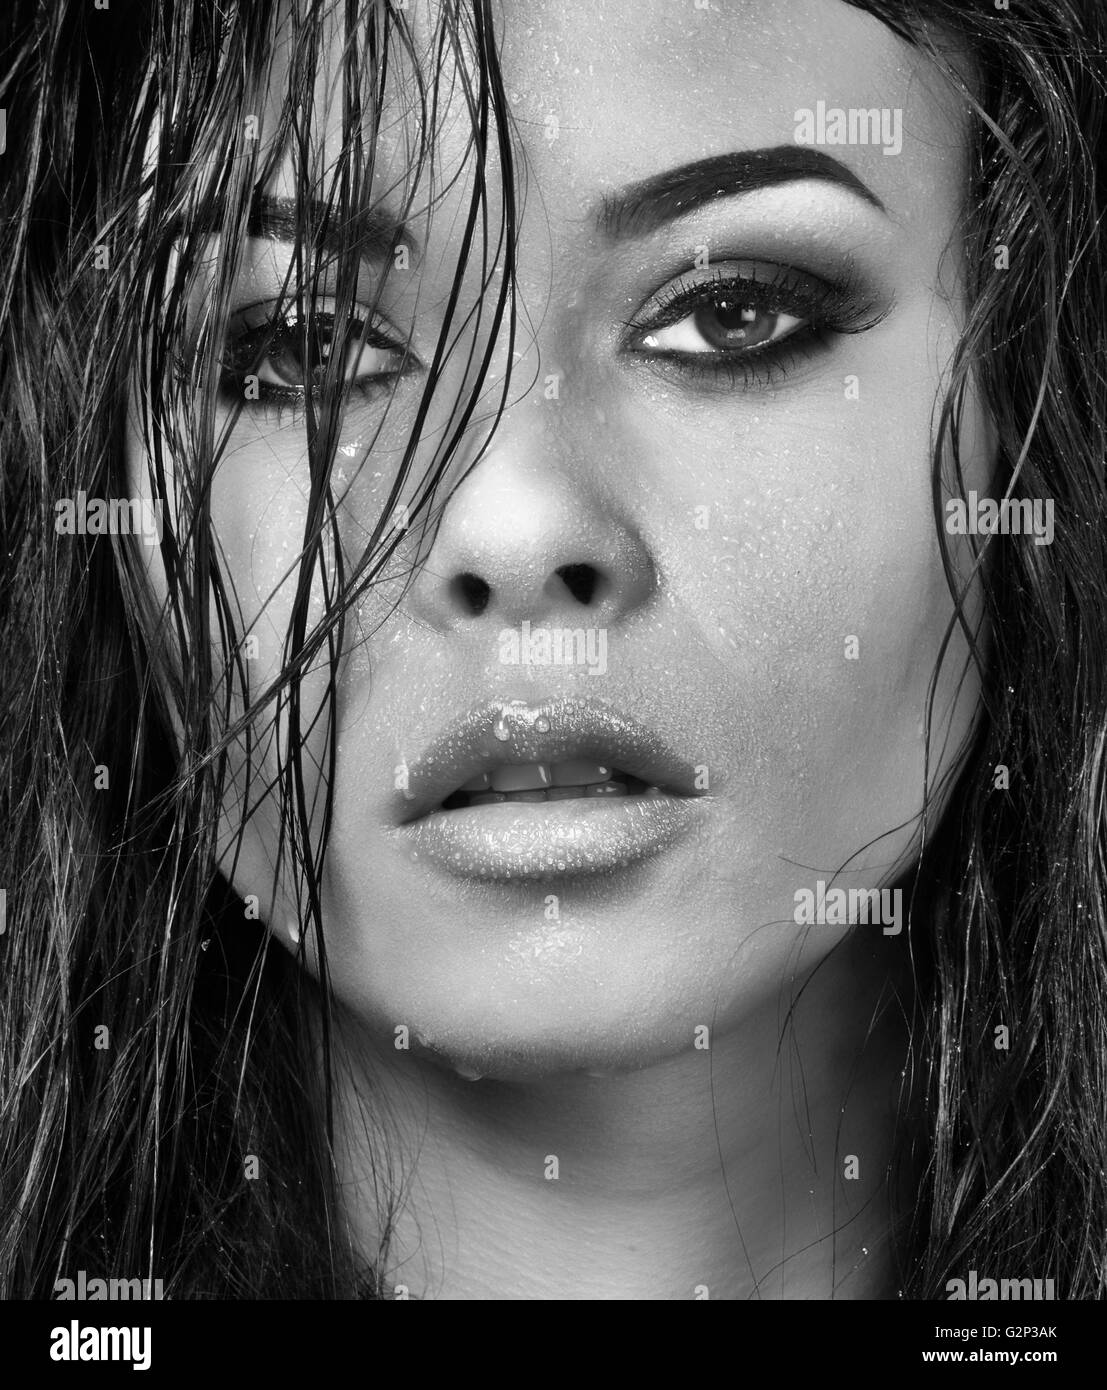 Black and white wet  faced beautiful model, with long hair and water droplets on sultry face - Stock Image